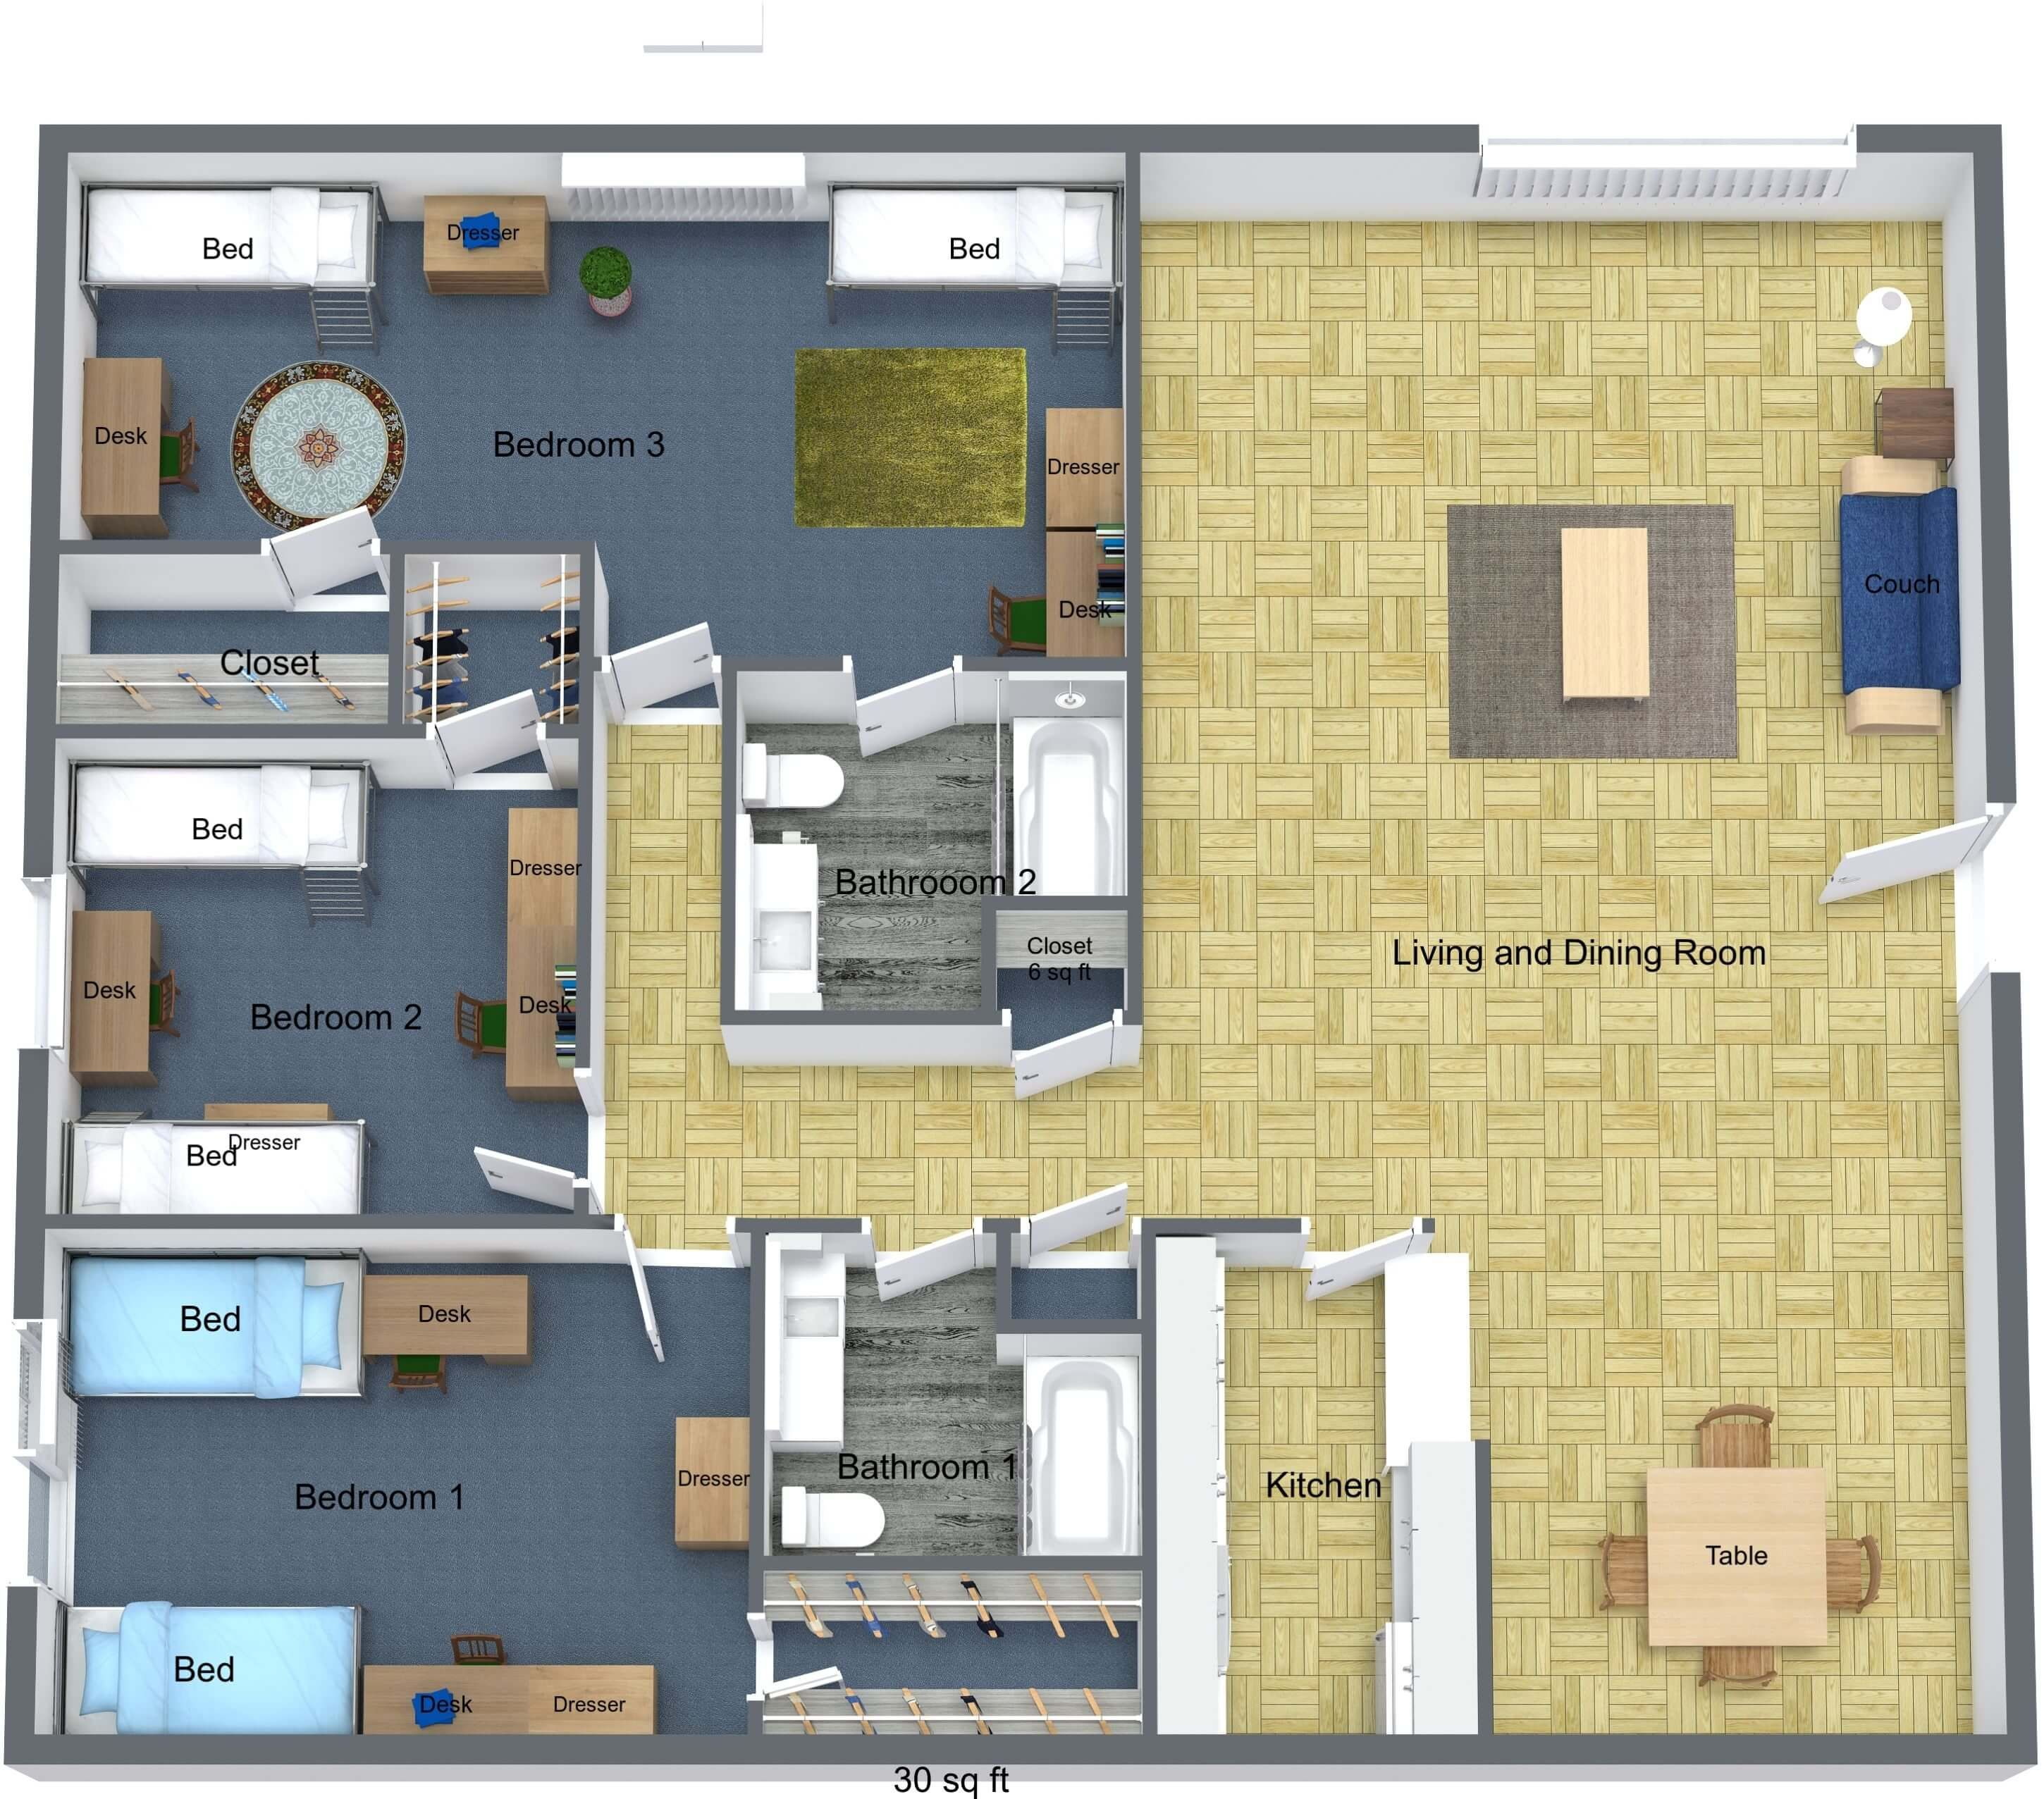 3 BR floor plan rendering for Young Hall dorm on campus of University of St. Thomas in Houston, Texas